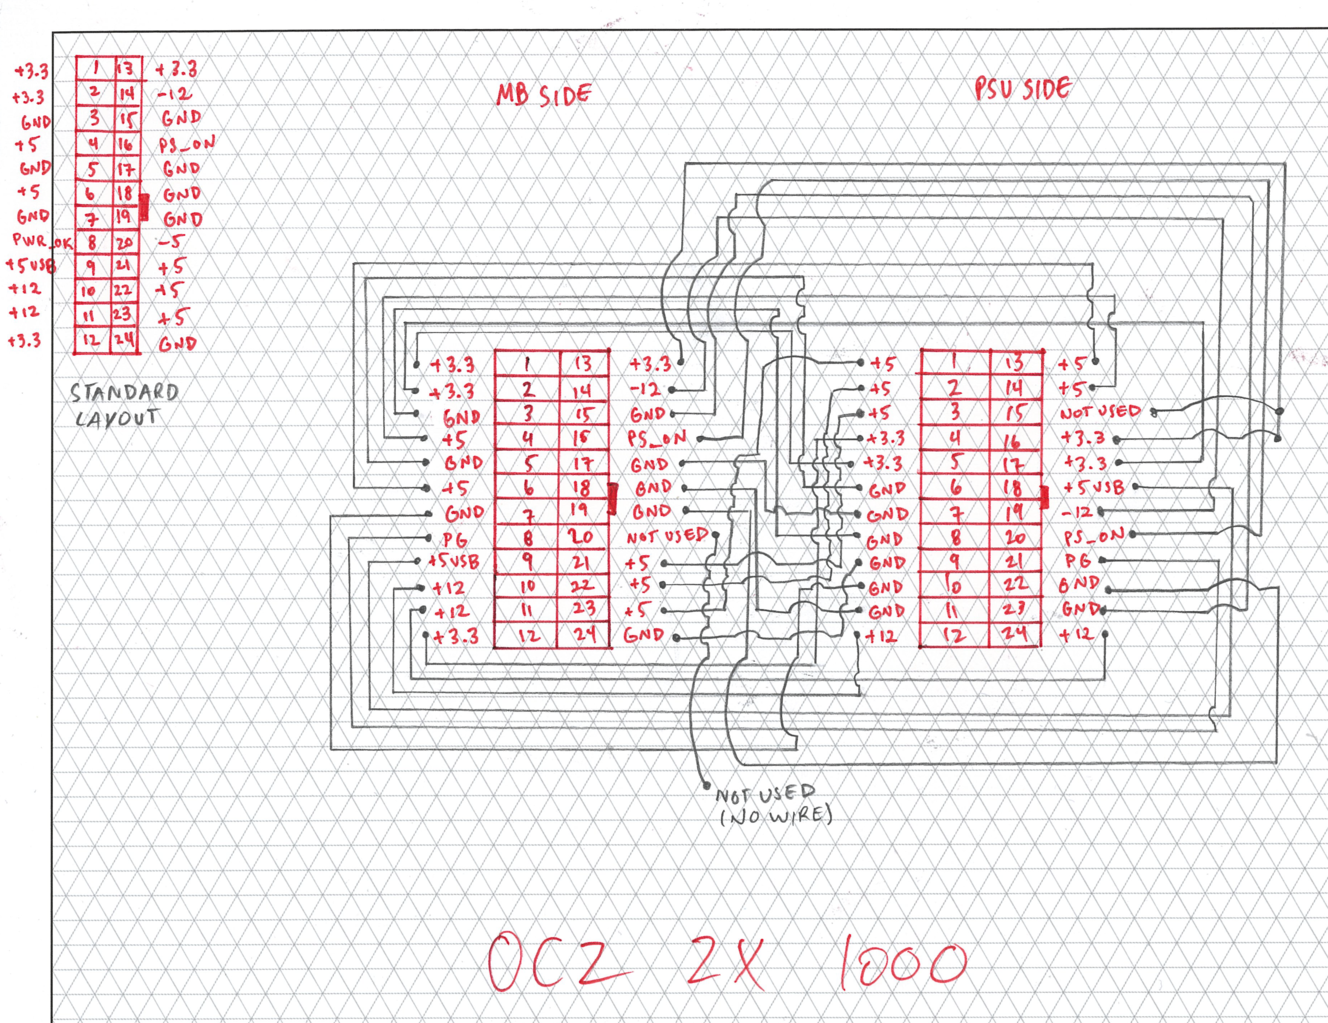 zx1000 wiring diagram auto coil wiring diagram ocz zx 1000 and corsair rm1000i sleeving questions - oc3d forums #7